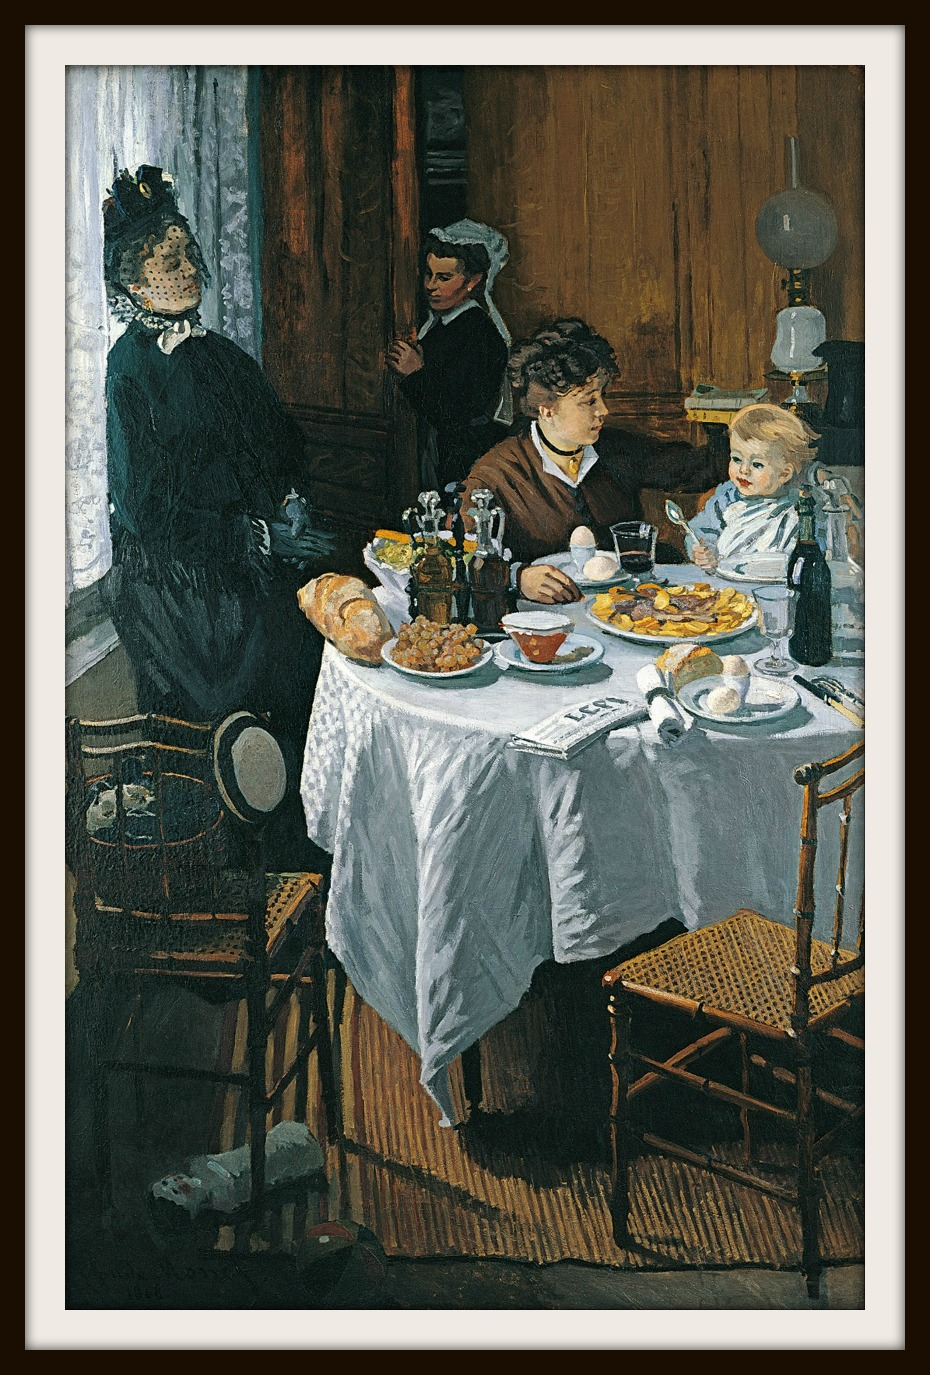 The Luncheon, 1868, Städel, which features Camille Doncieux and Jean Monet, was rejected by the Paris Salon of 1870 but included in the first Impressionists' exhibition in 1874. (97 in x 85 in)